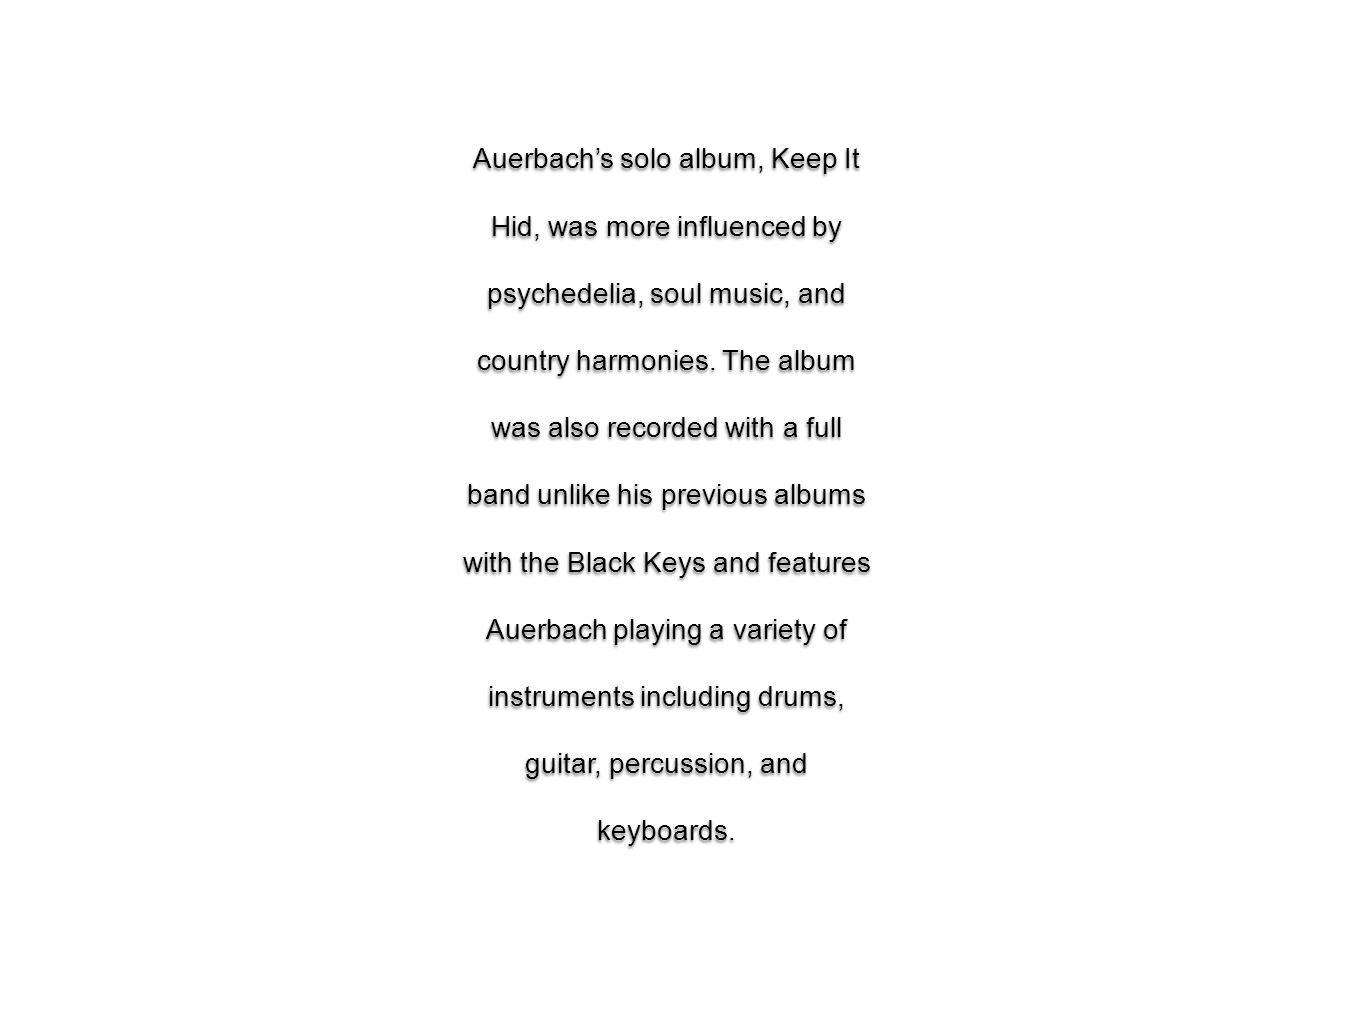 Auerbach's solo album, Keep It Hid, was more influenced by psychedelia, soul music, and country harmonies.